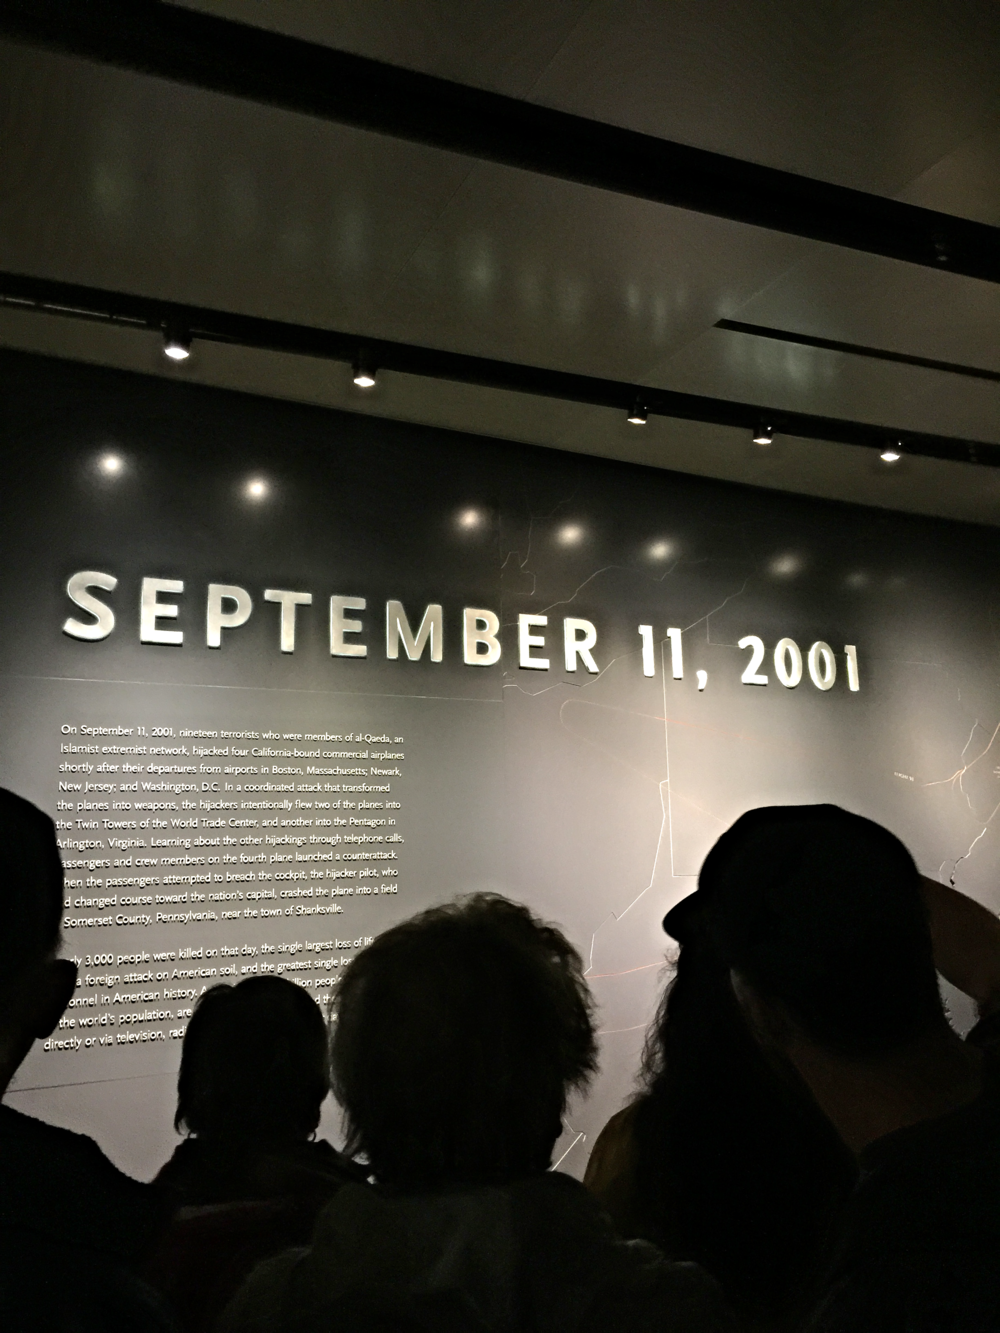 The 9/11 Museum raises many questions about how cultural institutions attempt to memorialize violent and difficult to comprehend historical events.